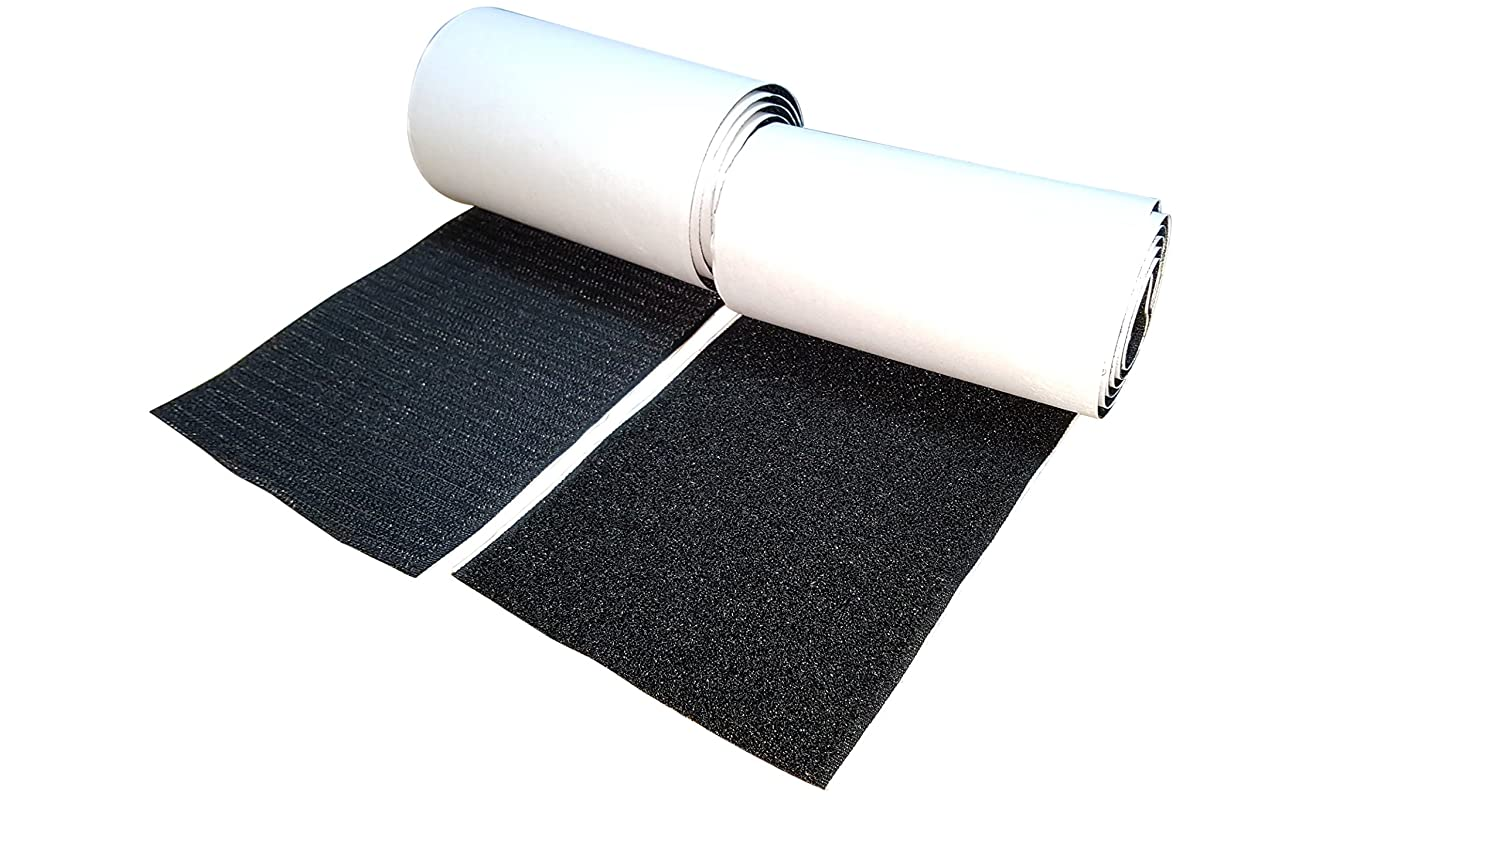 10CM Wide(Approx 4) 1 Meter Long Self Adhestive Hook And Loop Strips Set With Super Sticky Glue Nylon Fabric Fastener Black Hongxin LAttice DR-102